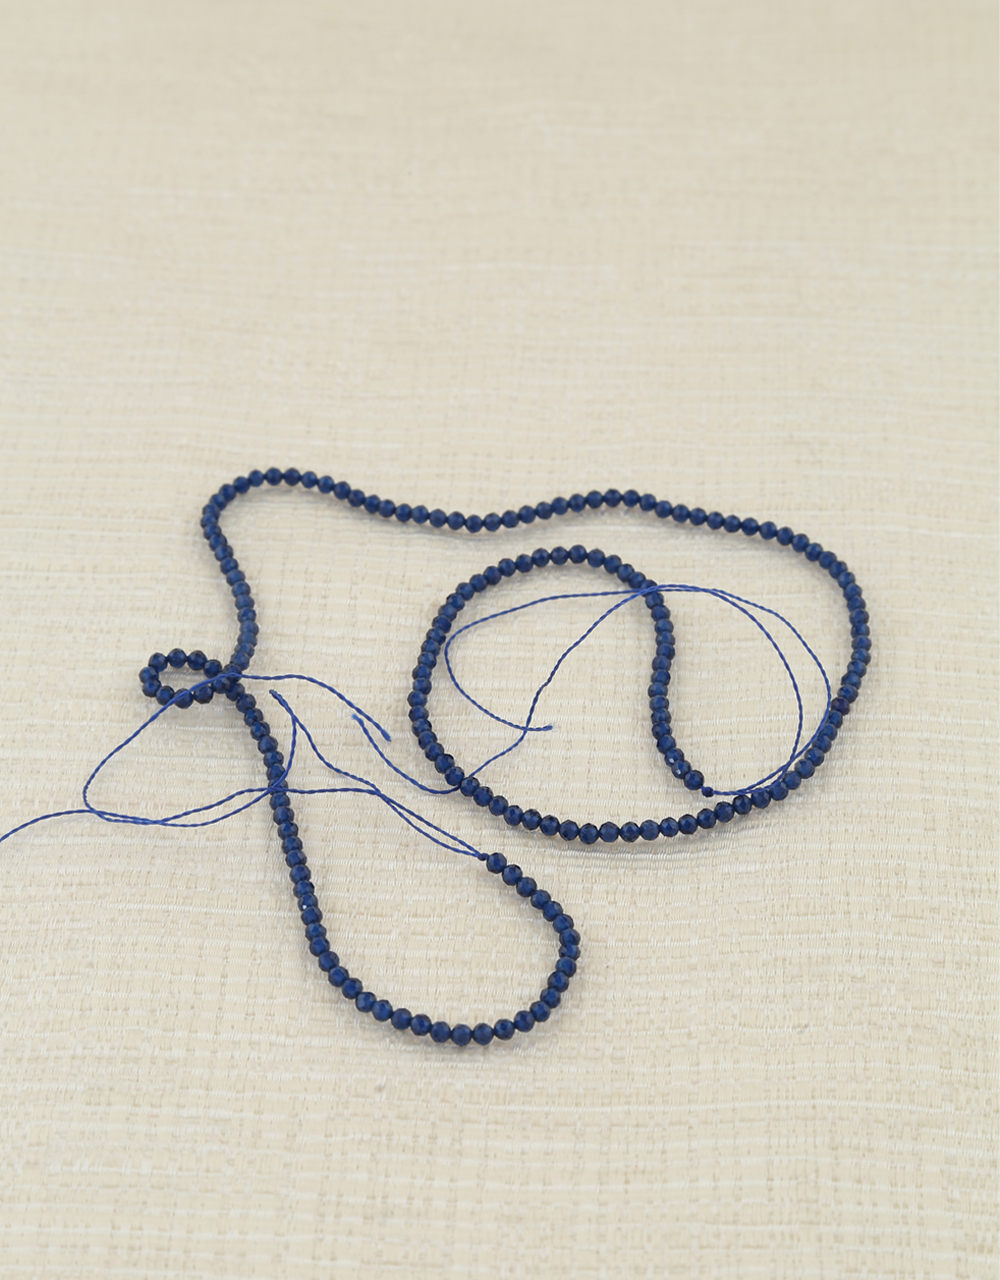 Blue Colour Beads Jewellery Accessories